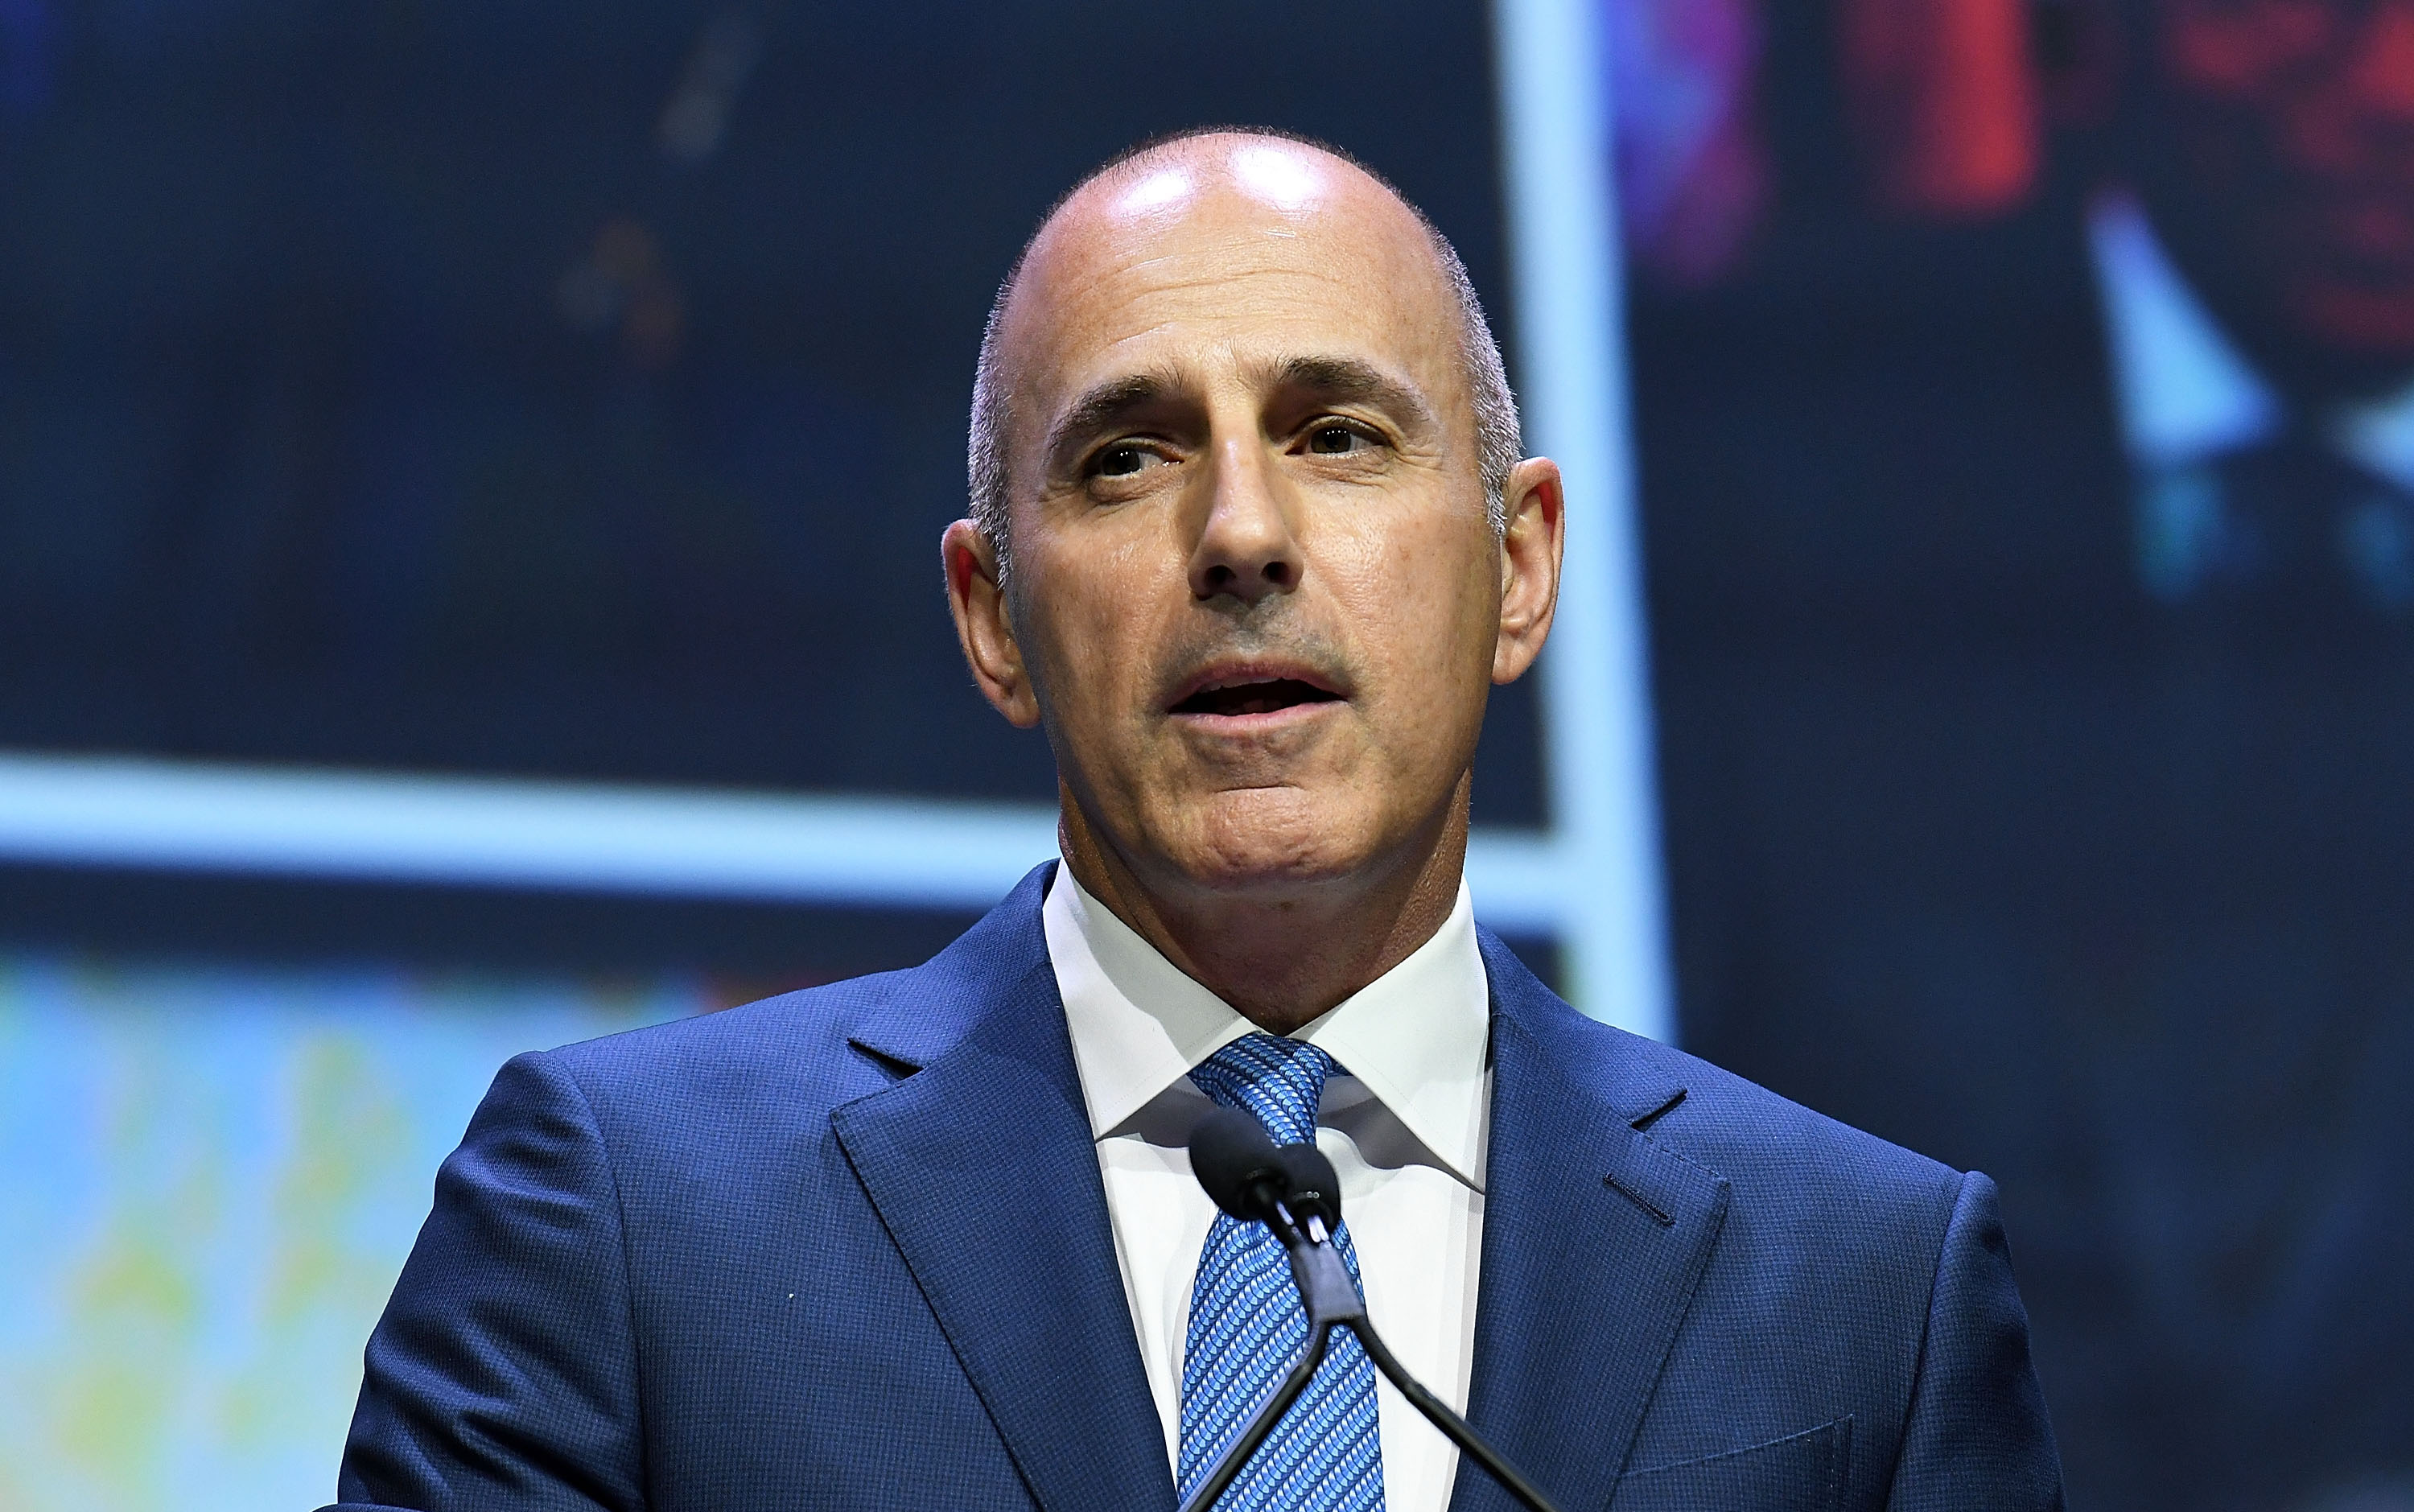 Former 'Today' Cohost Matt Lauer May Not Return to TV, Says Close Friend